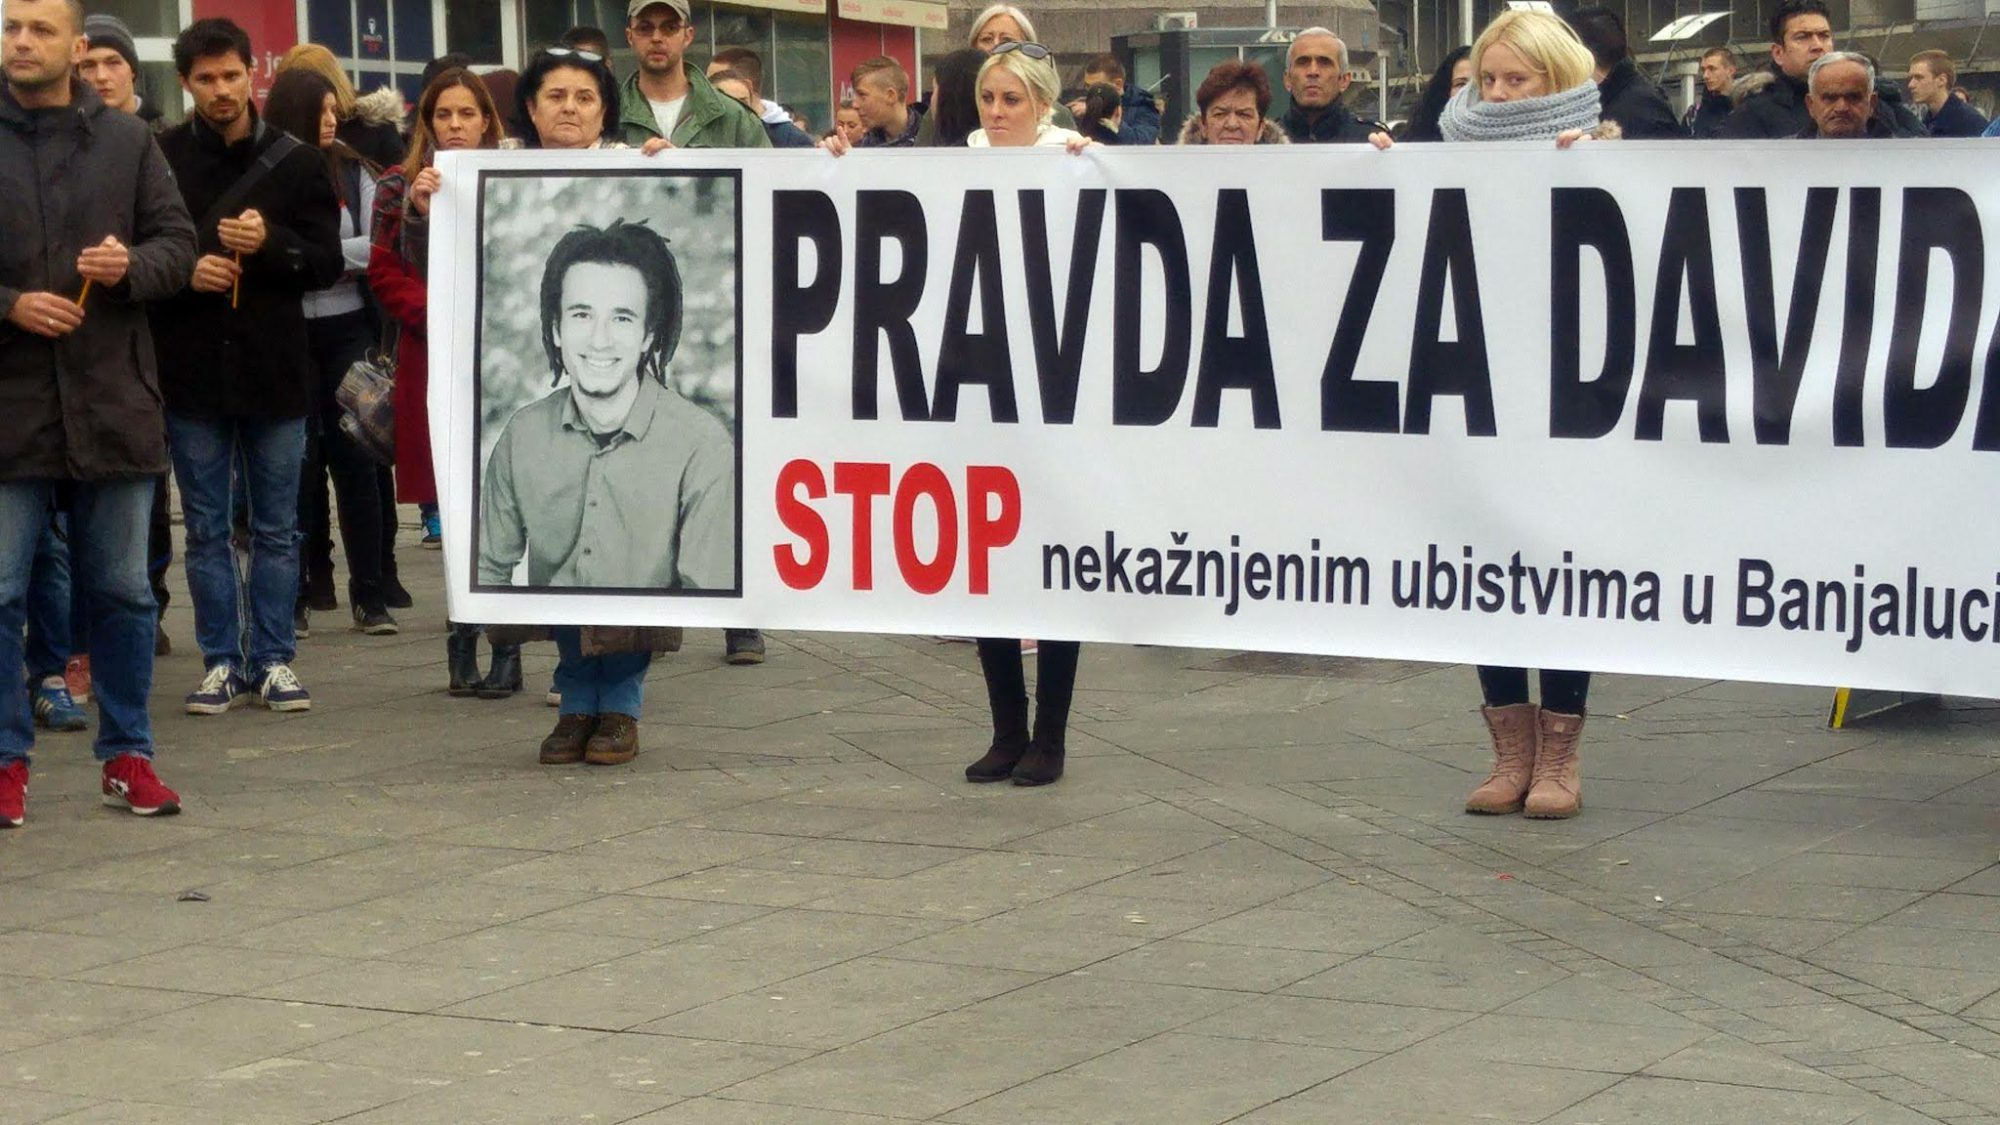 The suspicious death of a young man triggered protests in Banja Luka